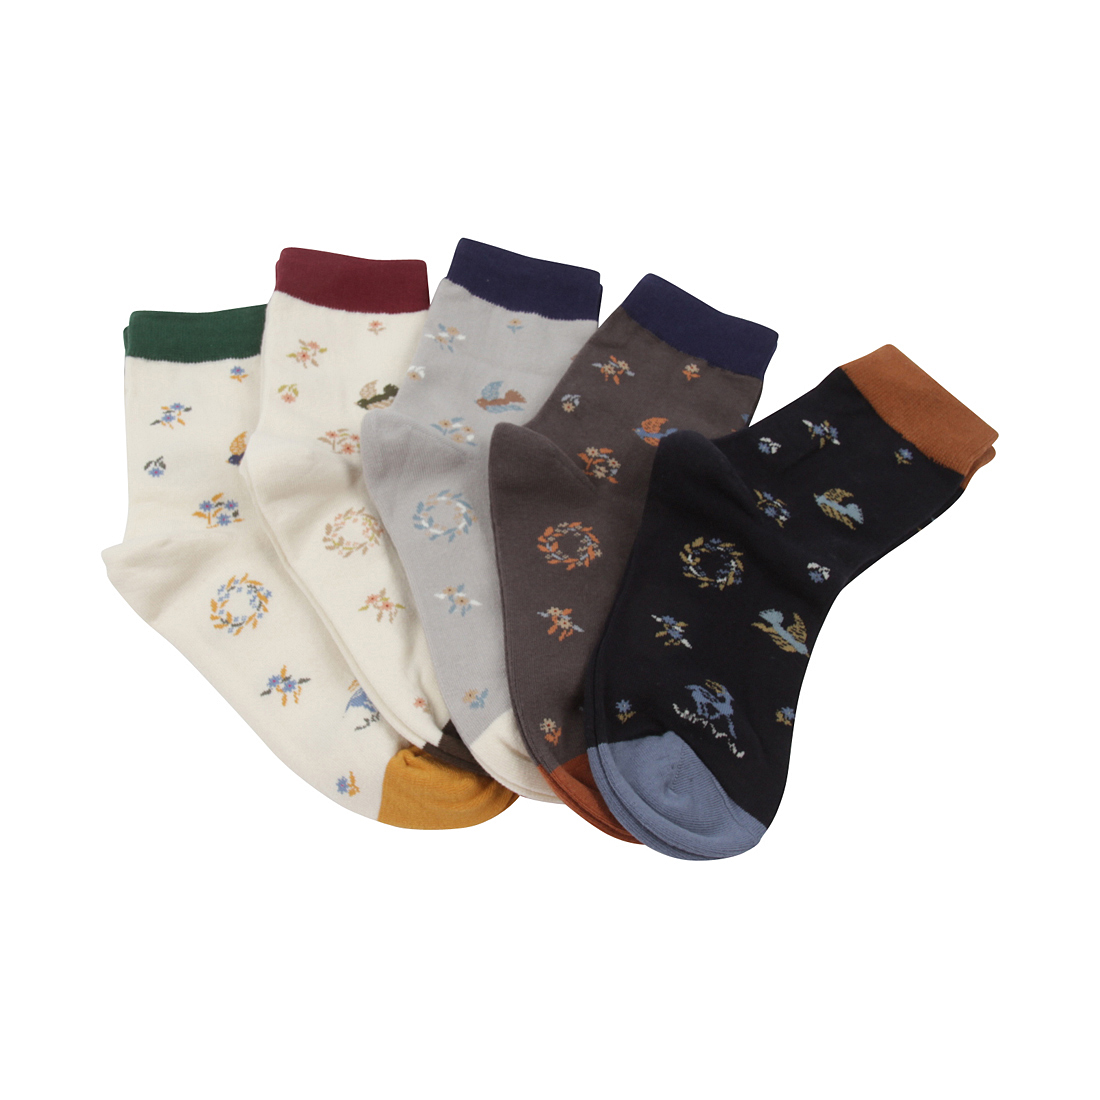 FloraKoh Womens Cotton Crew Socks 5 Pack Gardenflorakoh